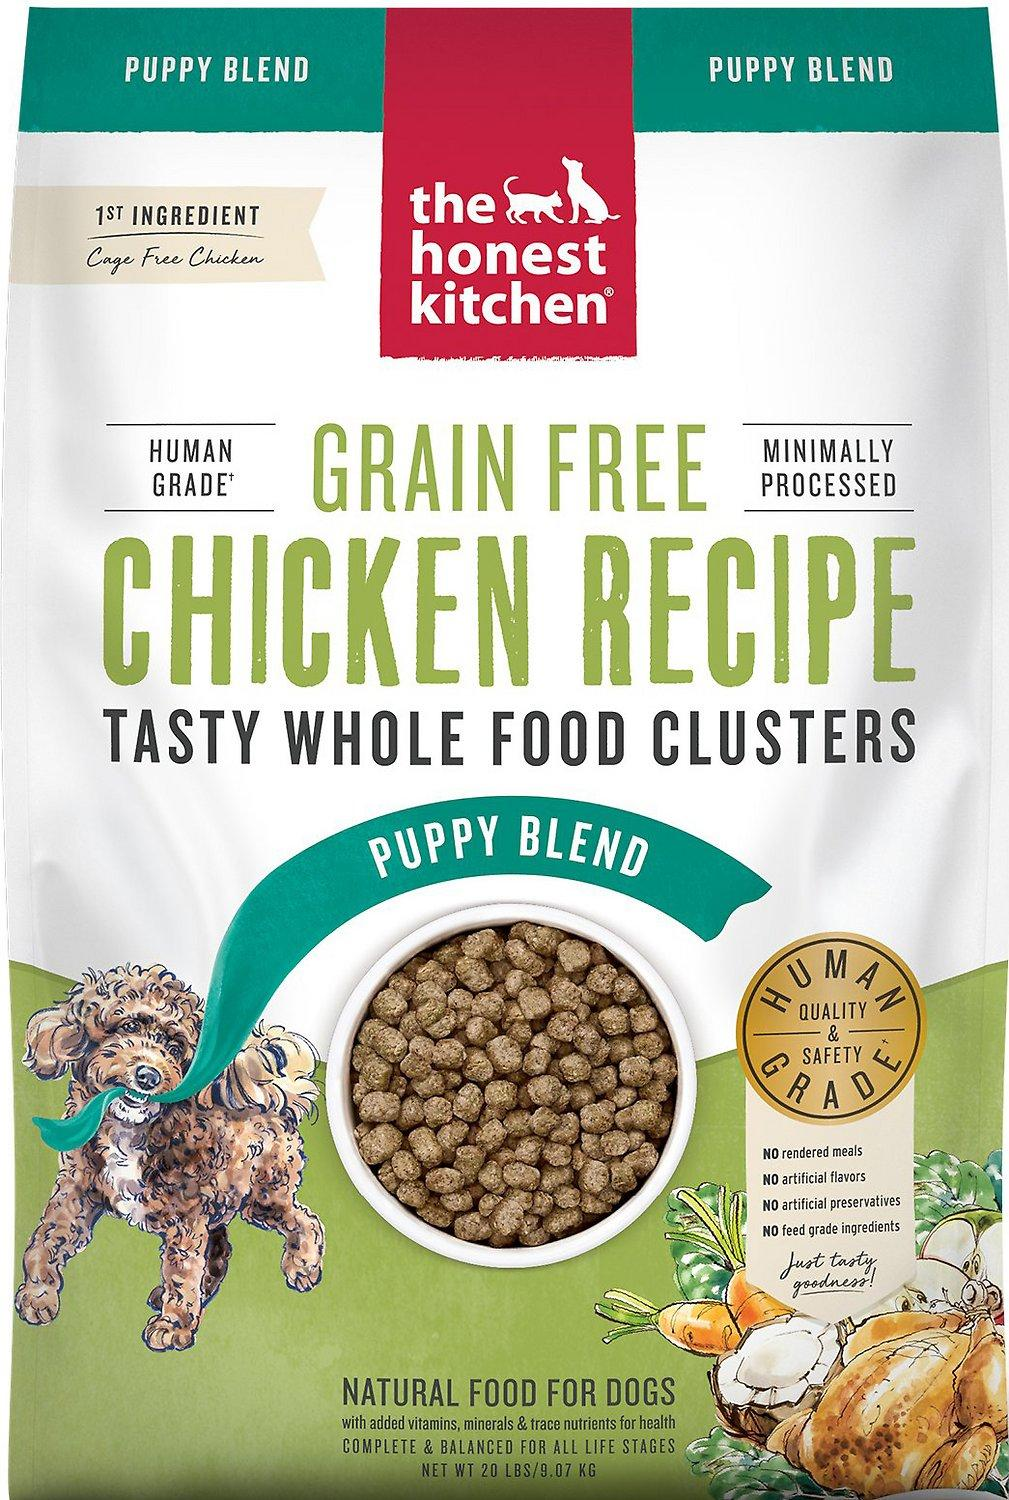 The Honest Kitchen Whole Food Clusters Chicken Puppy Blend Grain-Free Dehydrated Dog Food, 20-lb